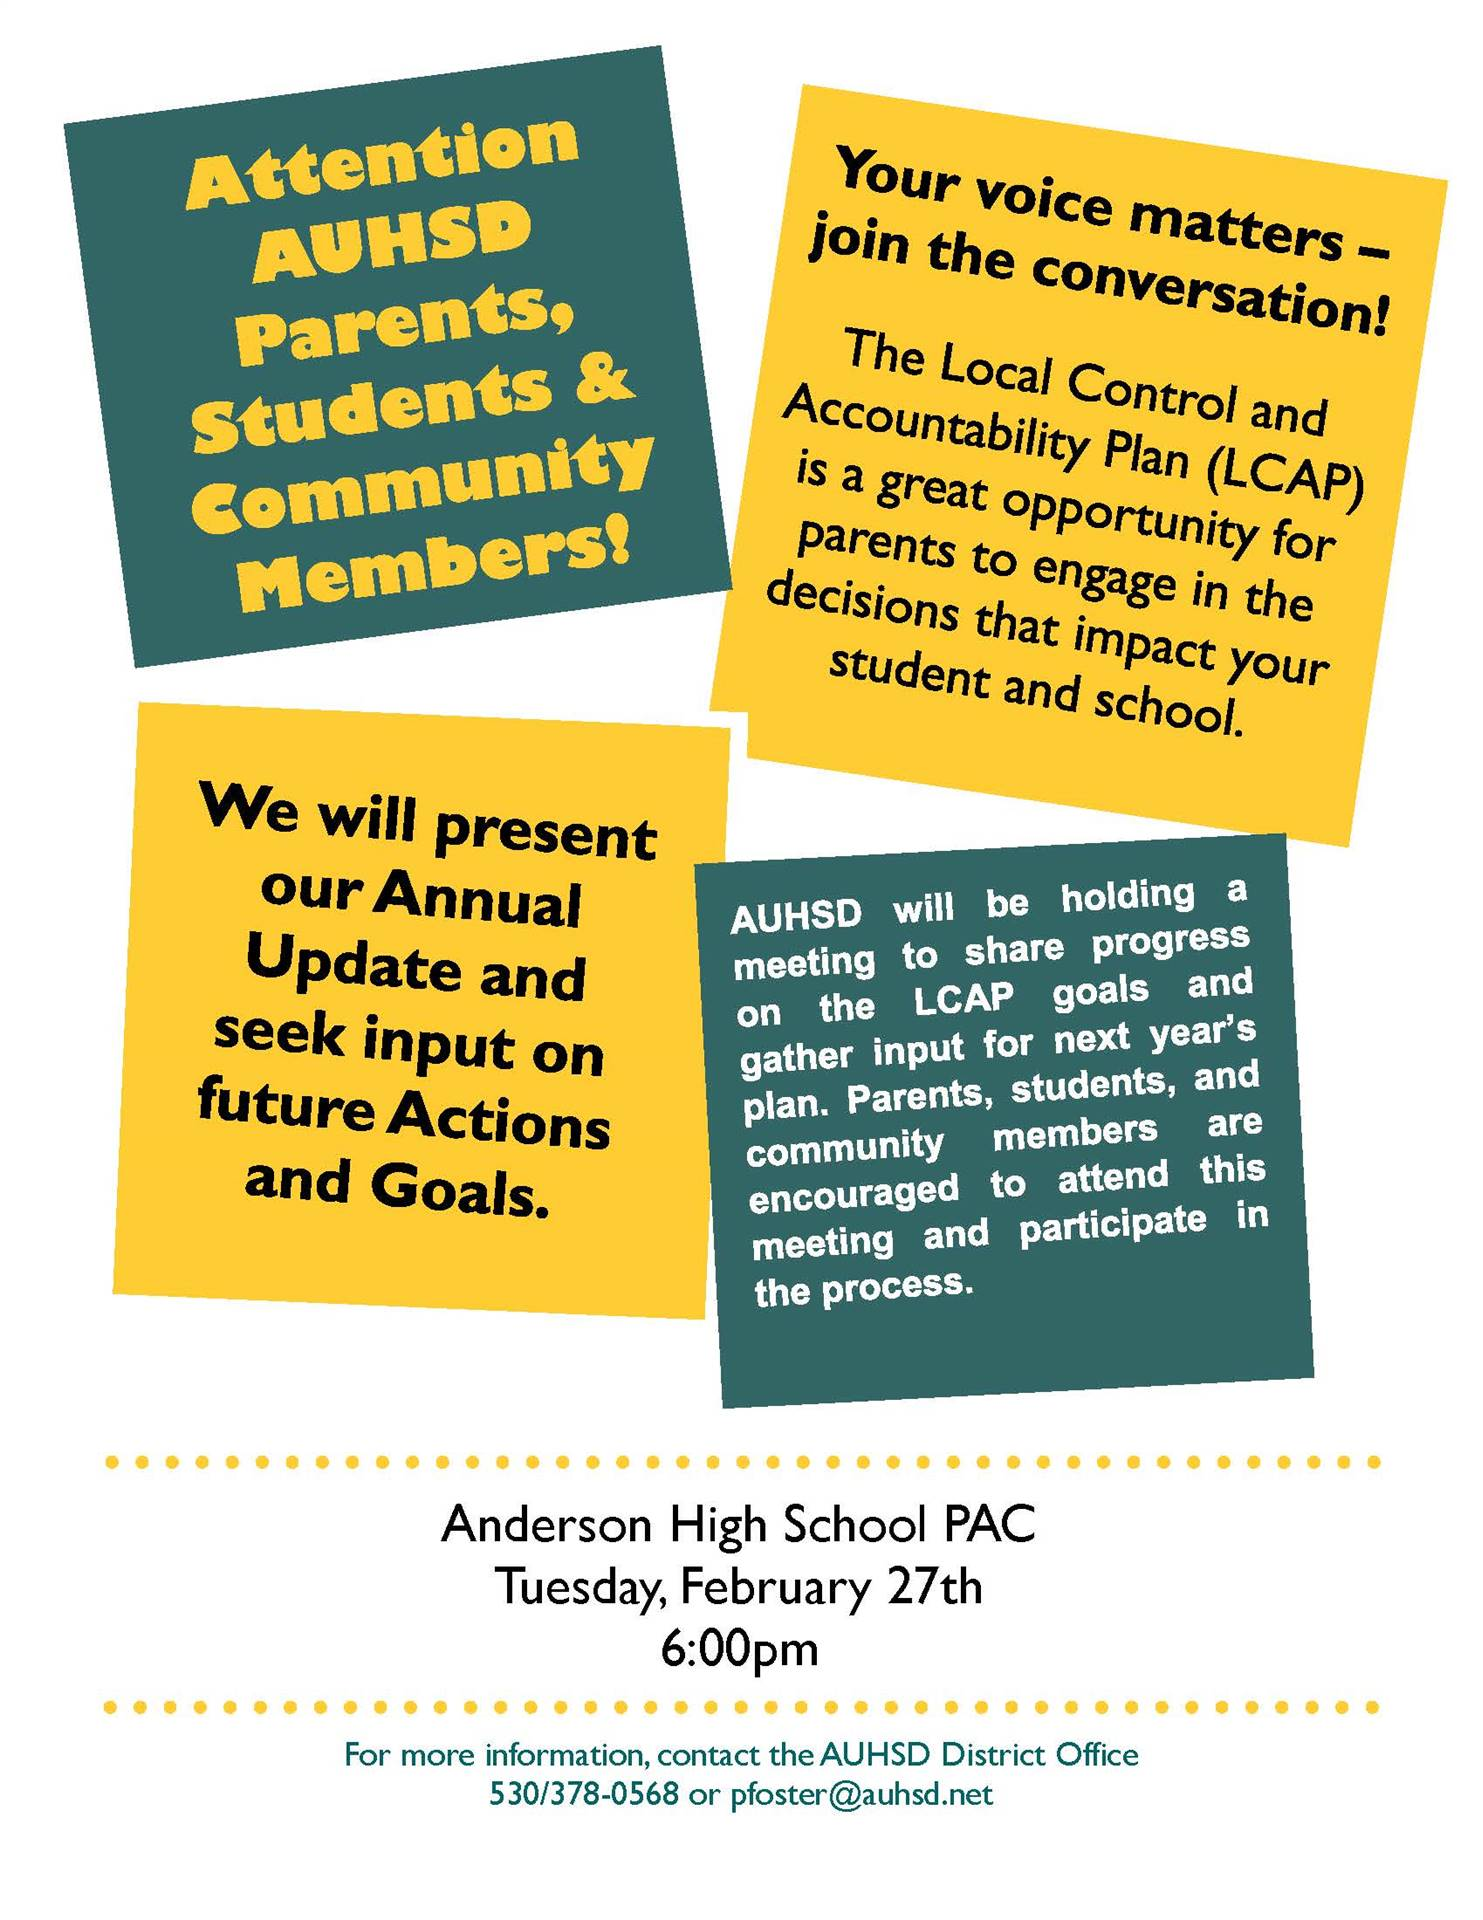 LCAP Meeting: February 27, 6 pm, AUHS PAC